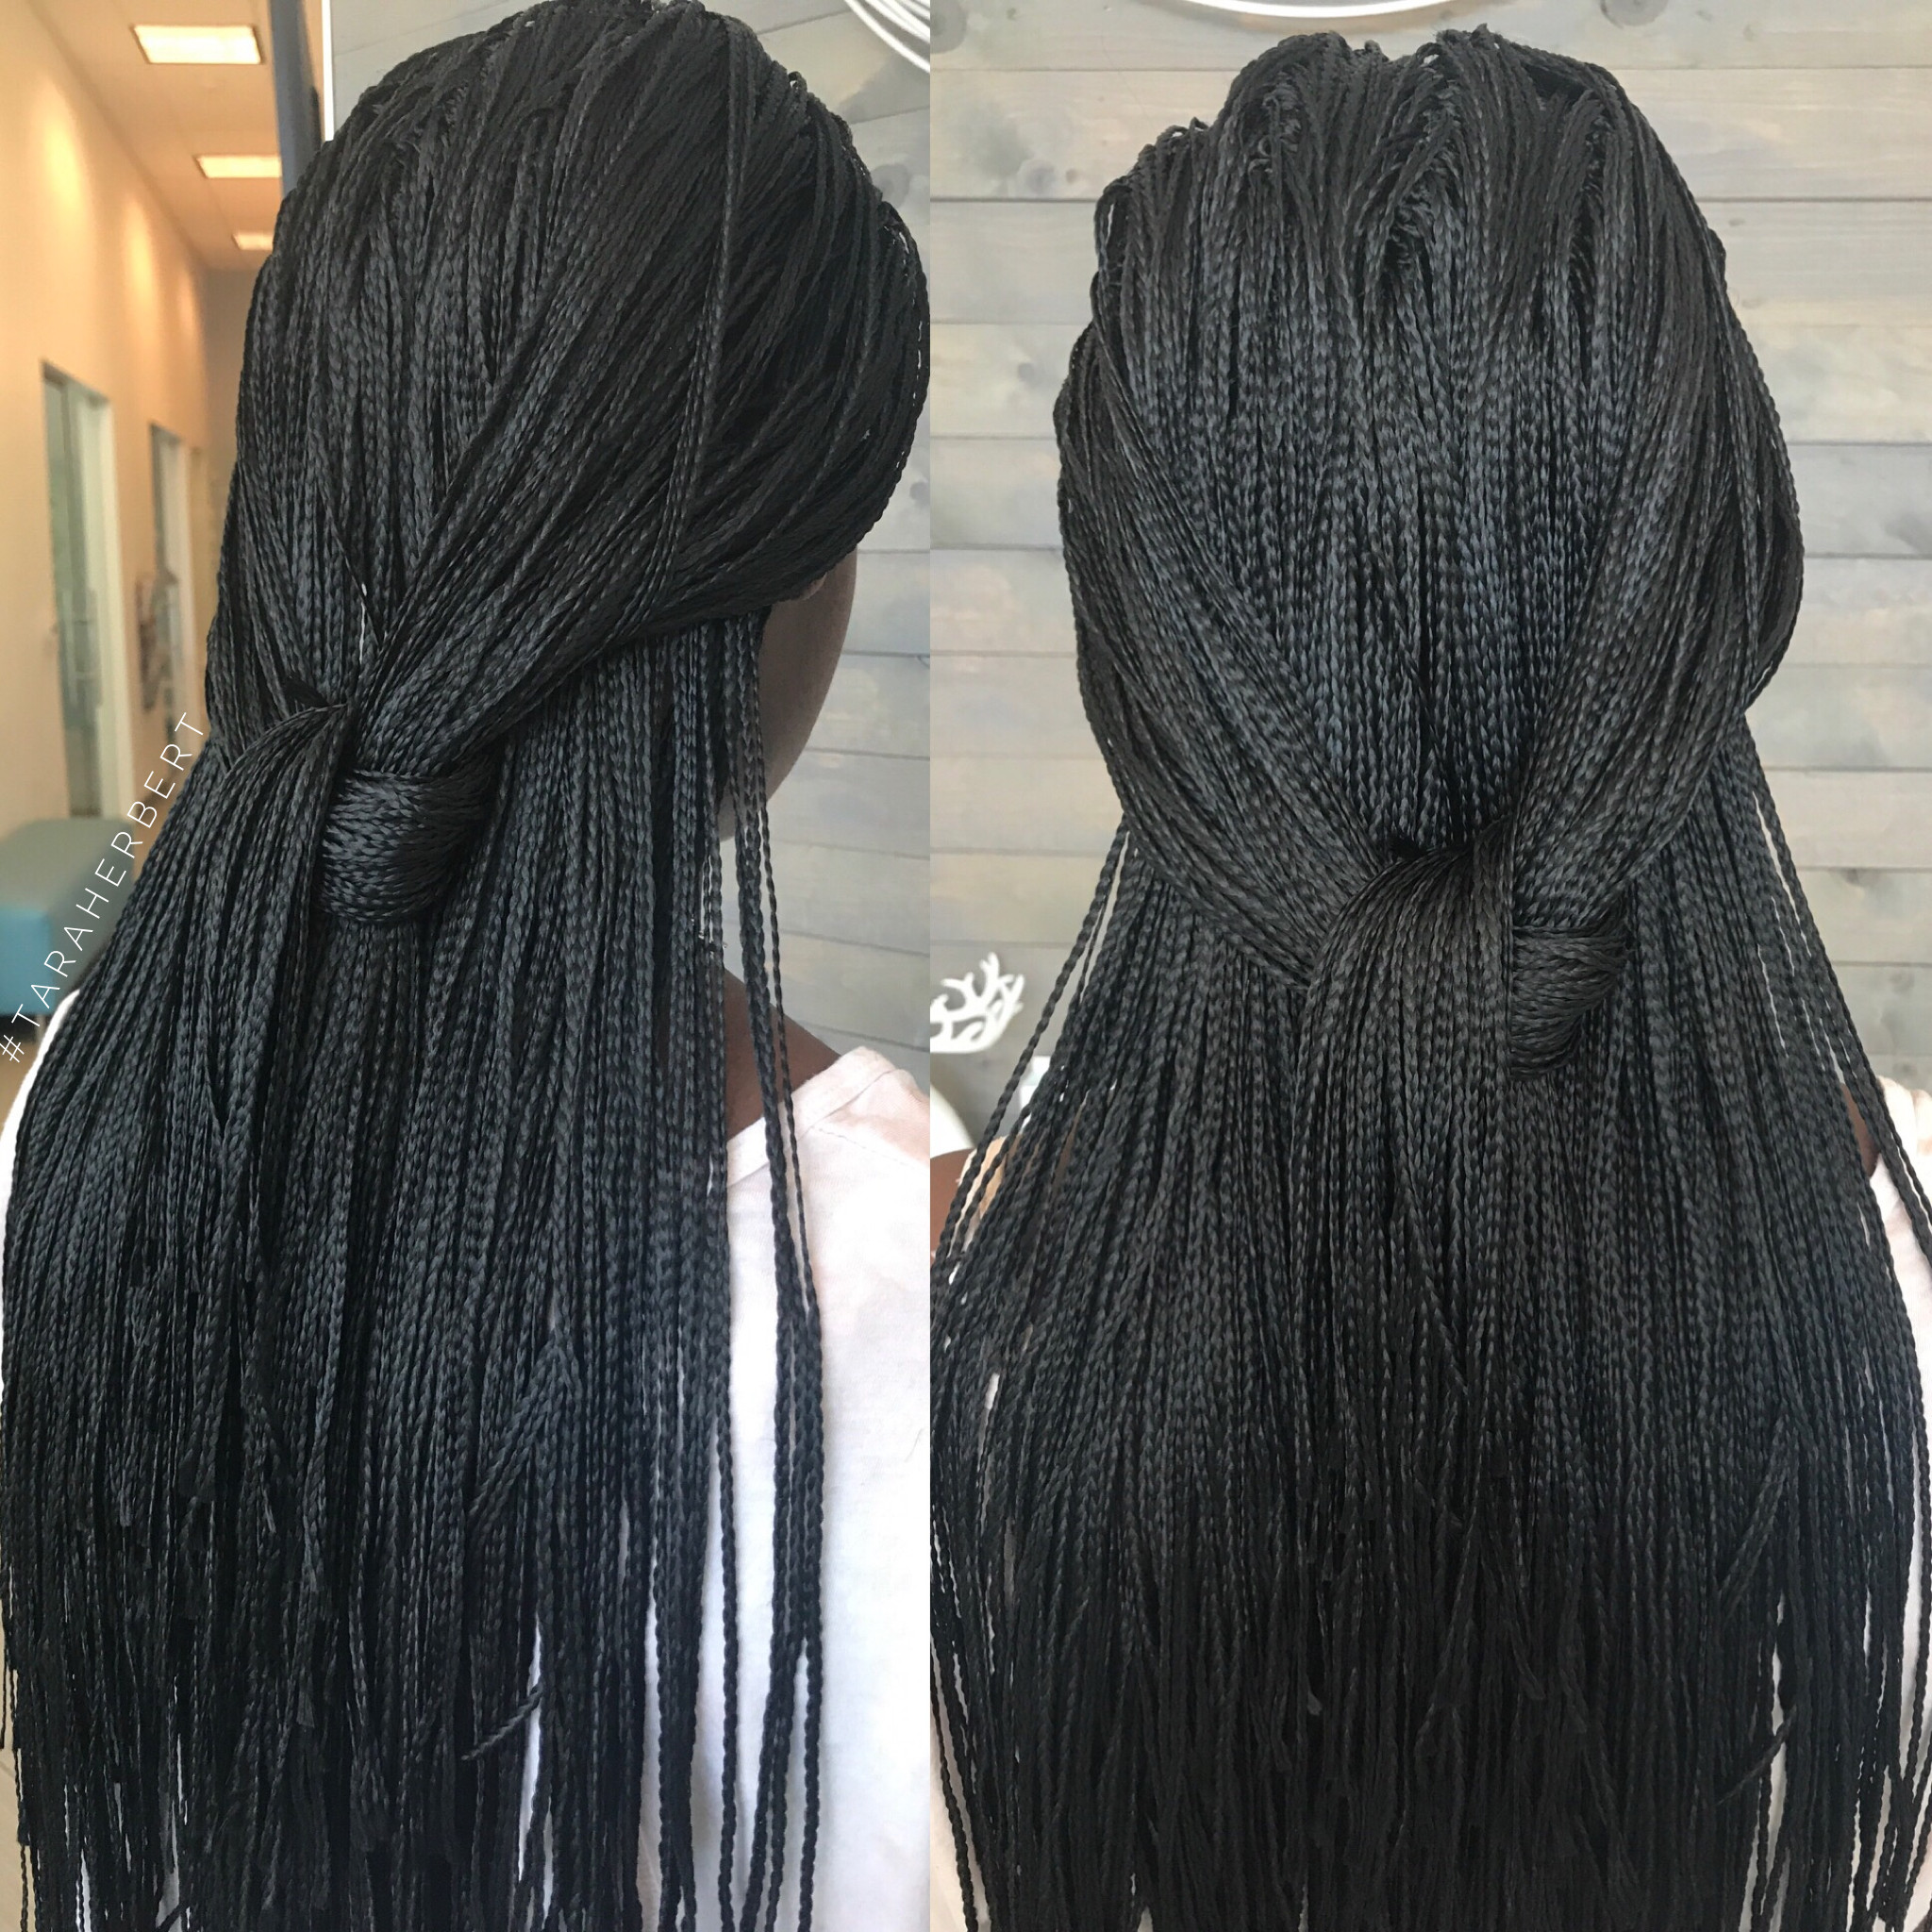 Awesome Braids On Fleek Micro Crochet Braids by Alter Ego Studio Crochet Braids Salon Of Amazing 47 Ideas Crochet Braids Salon